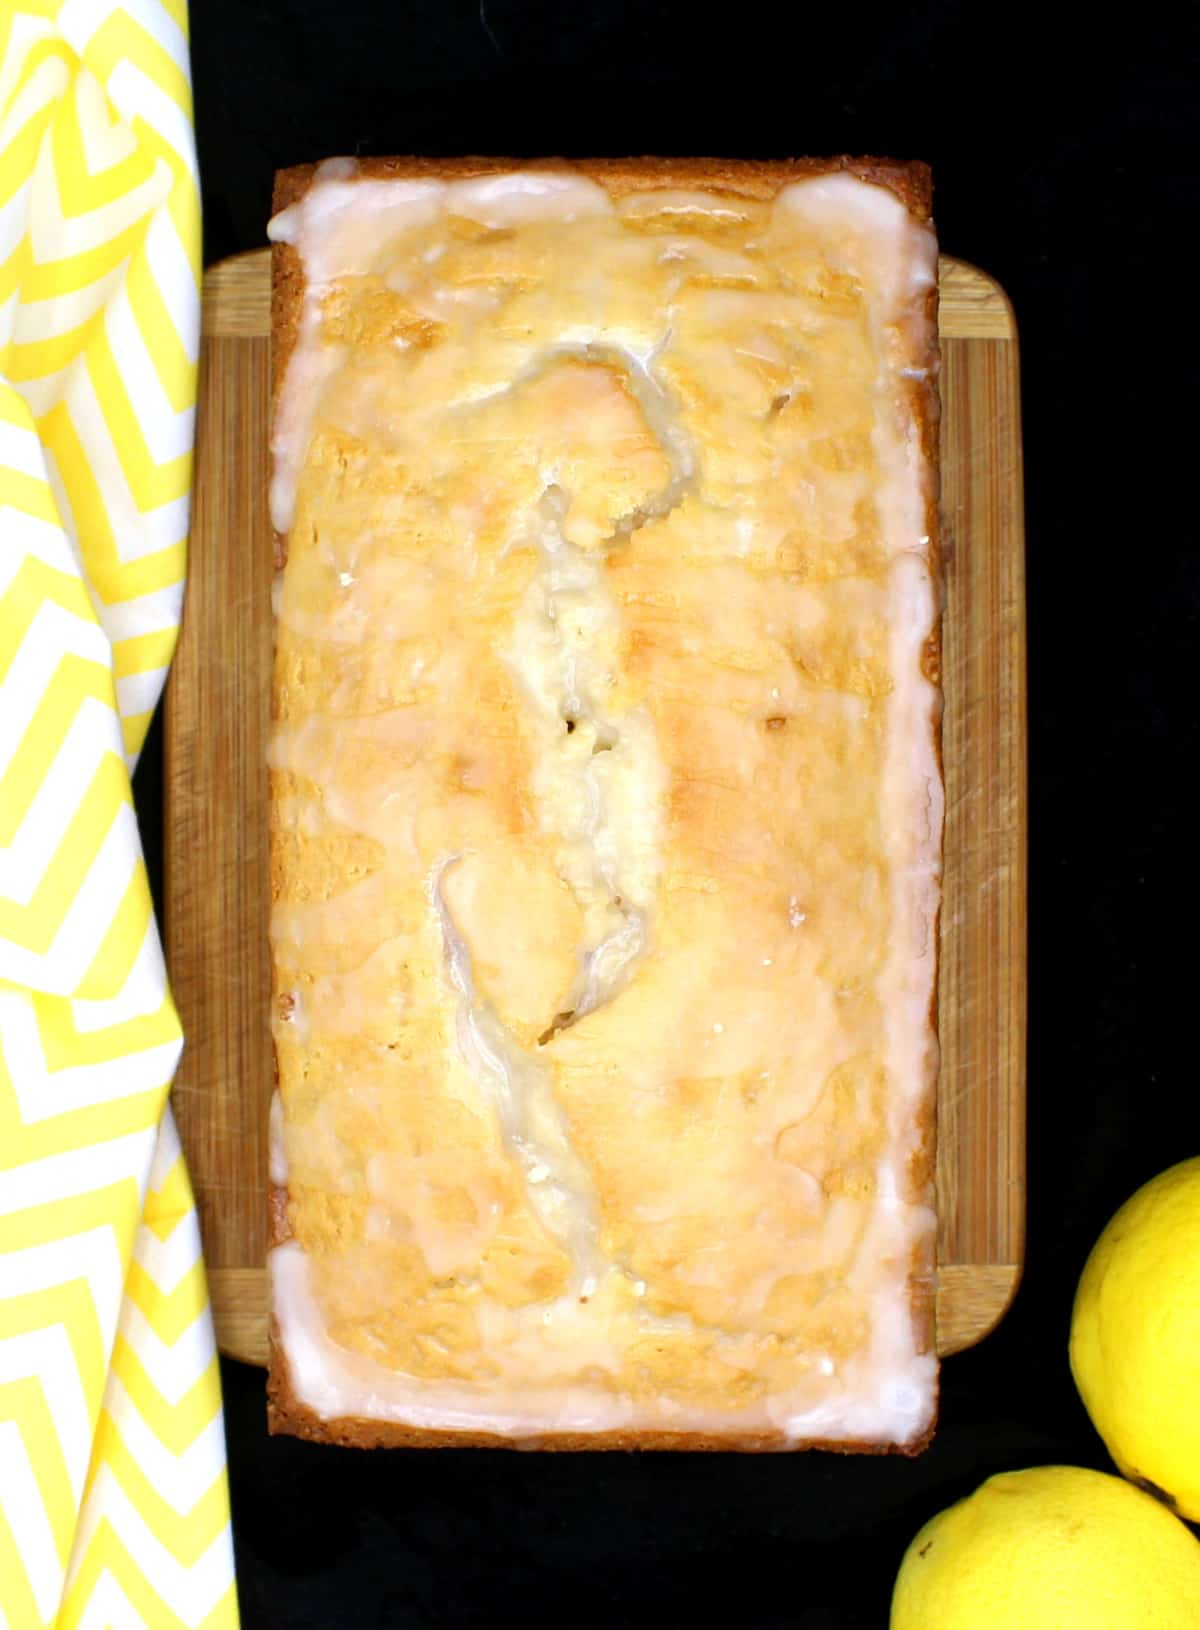 A whole loaf of buttery vegan lemon pound cake on a metal baking tray. Next to it are lemons and a yellow and white napkin.